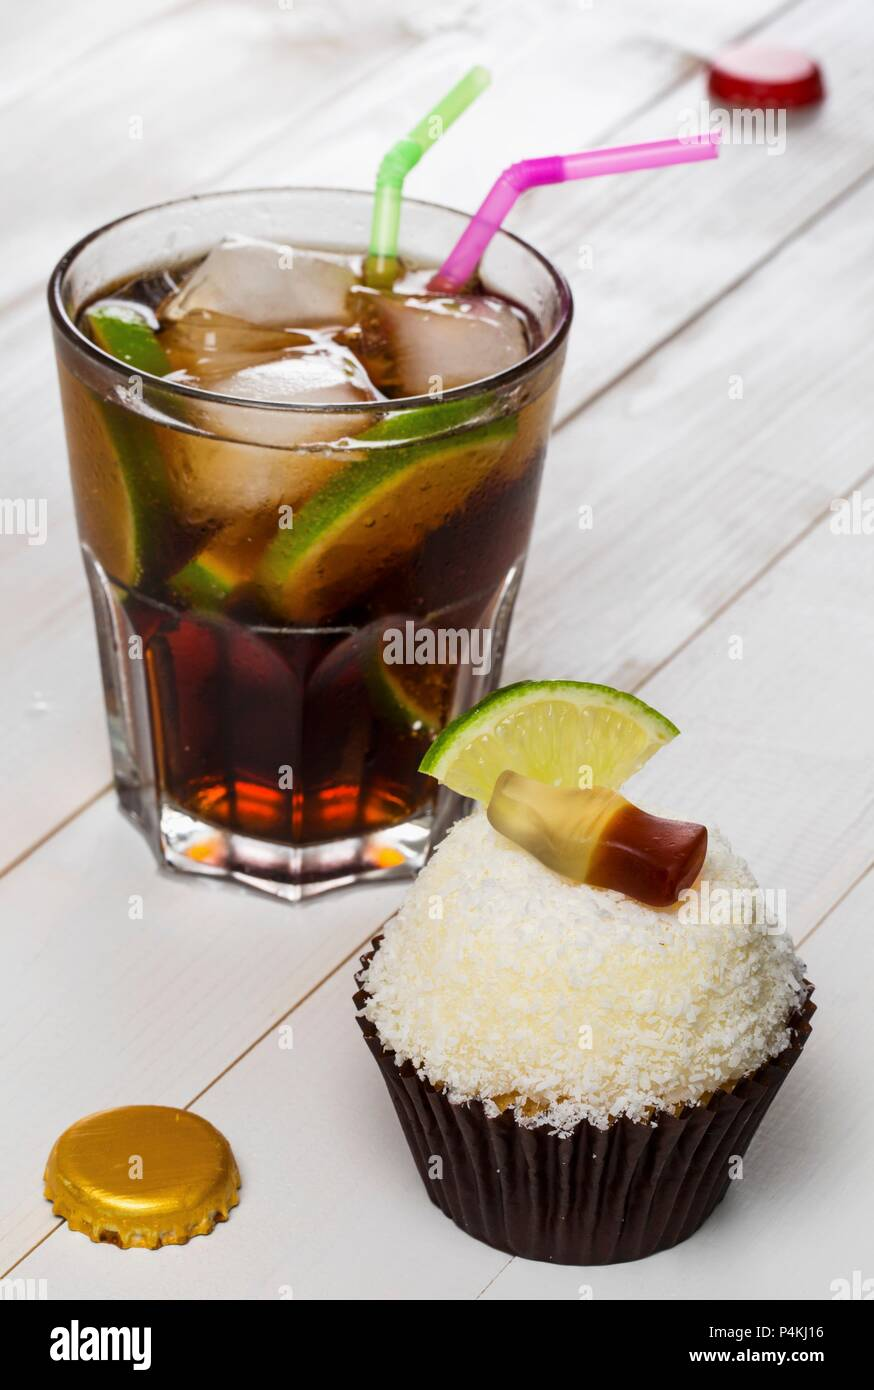 A Cuba Libre cupcake and the cocktail of the same name - Stock Image